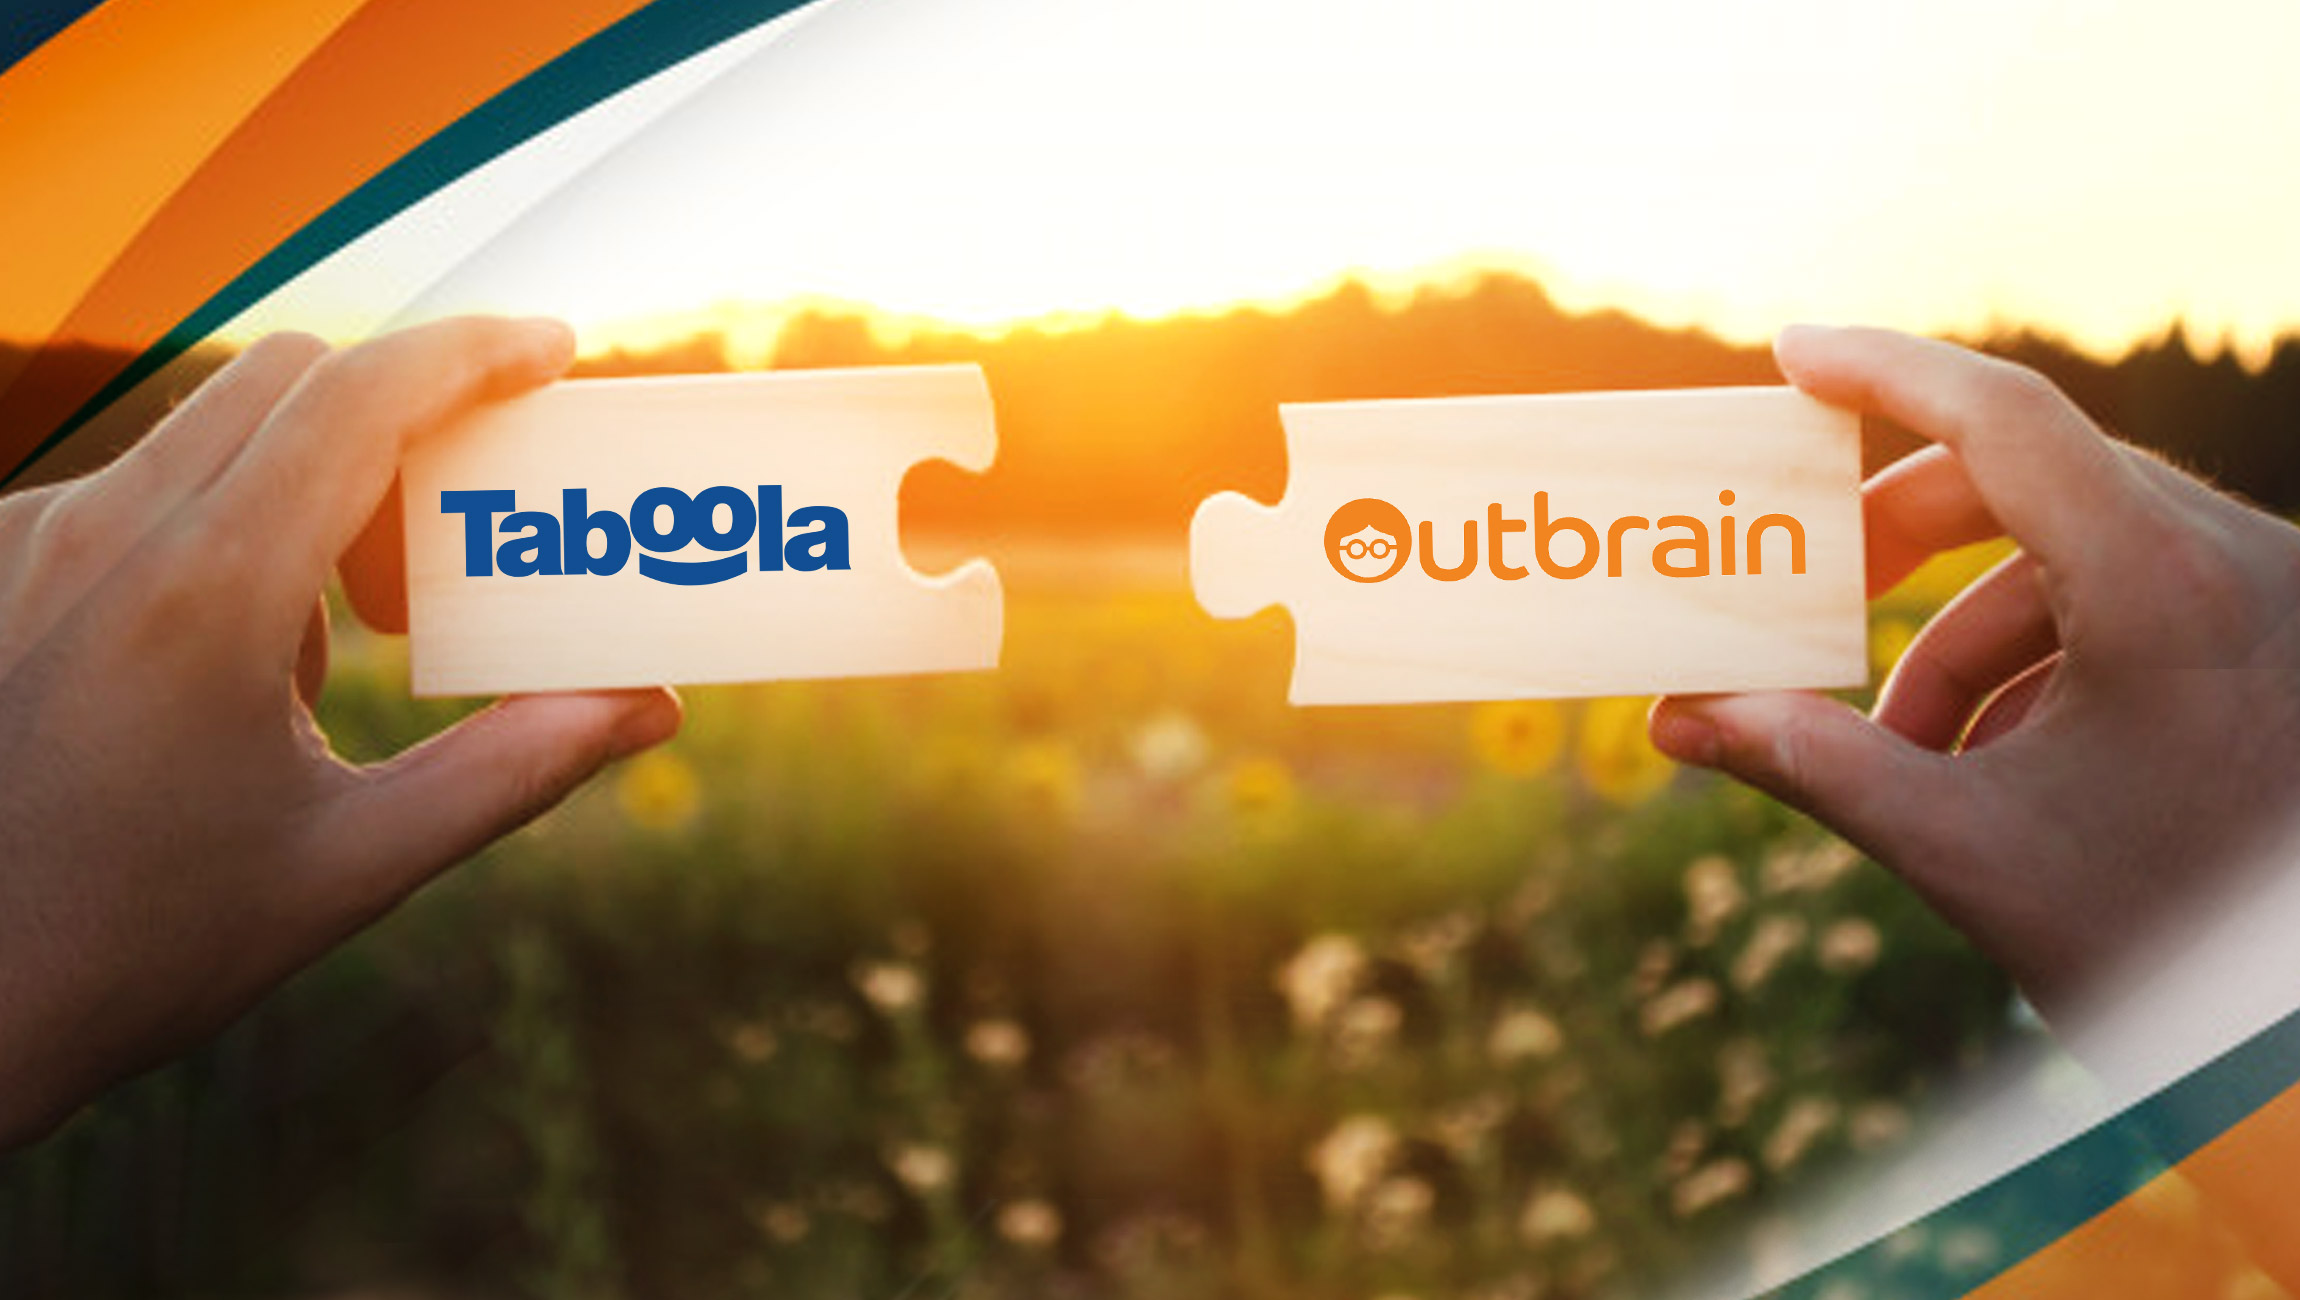 Taboola/Outbrain Merger